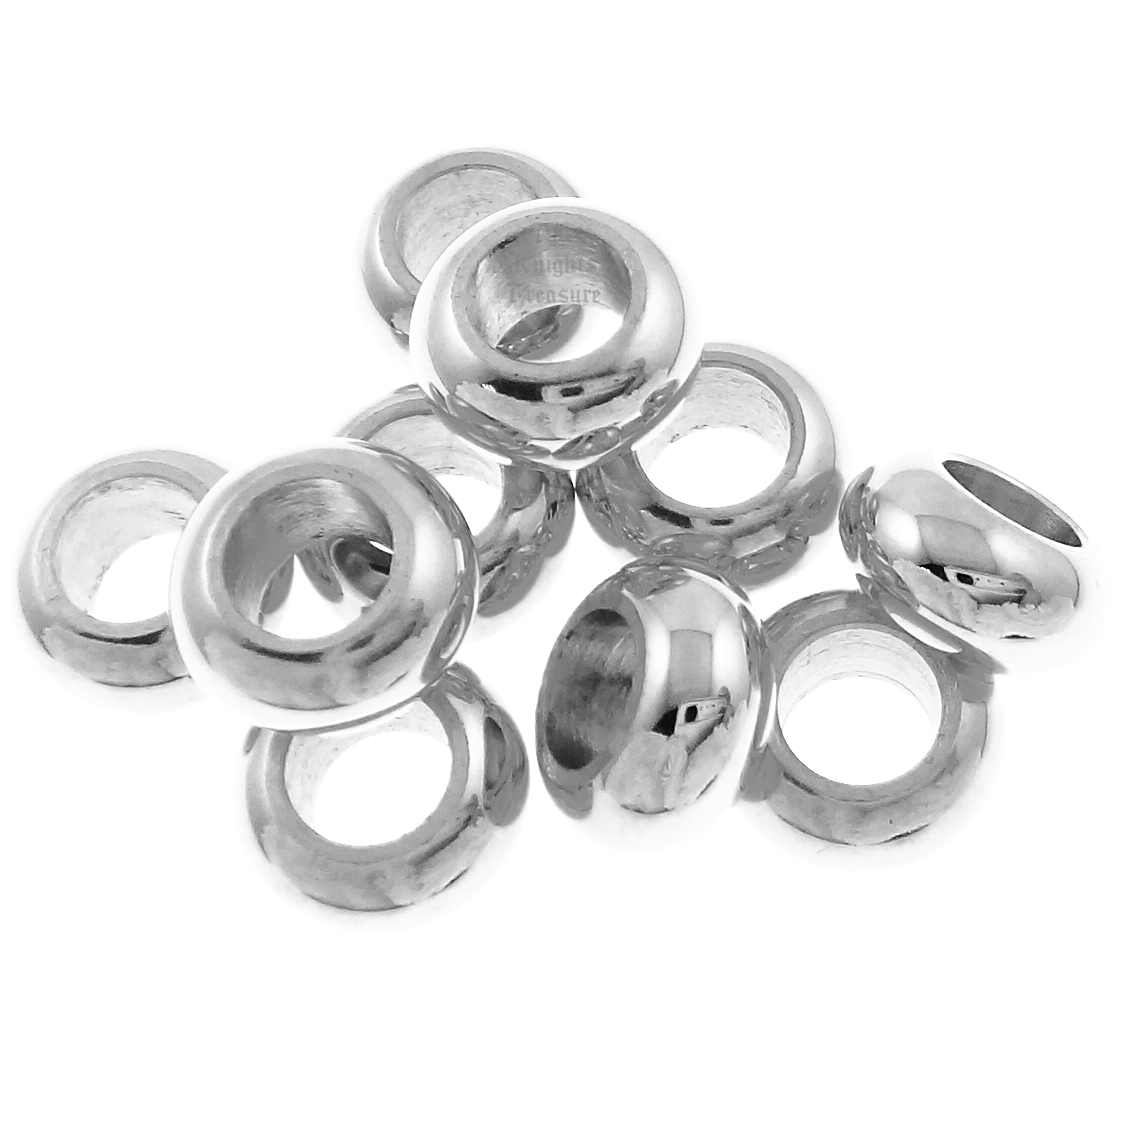 Beads and Charms for Pandora Charm Bracelets Stainless Steel Spacers